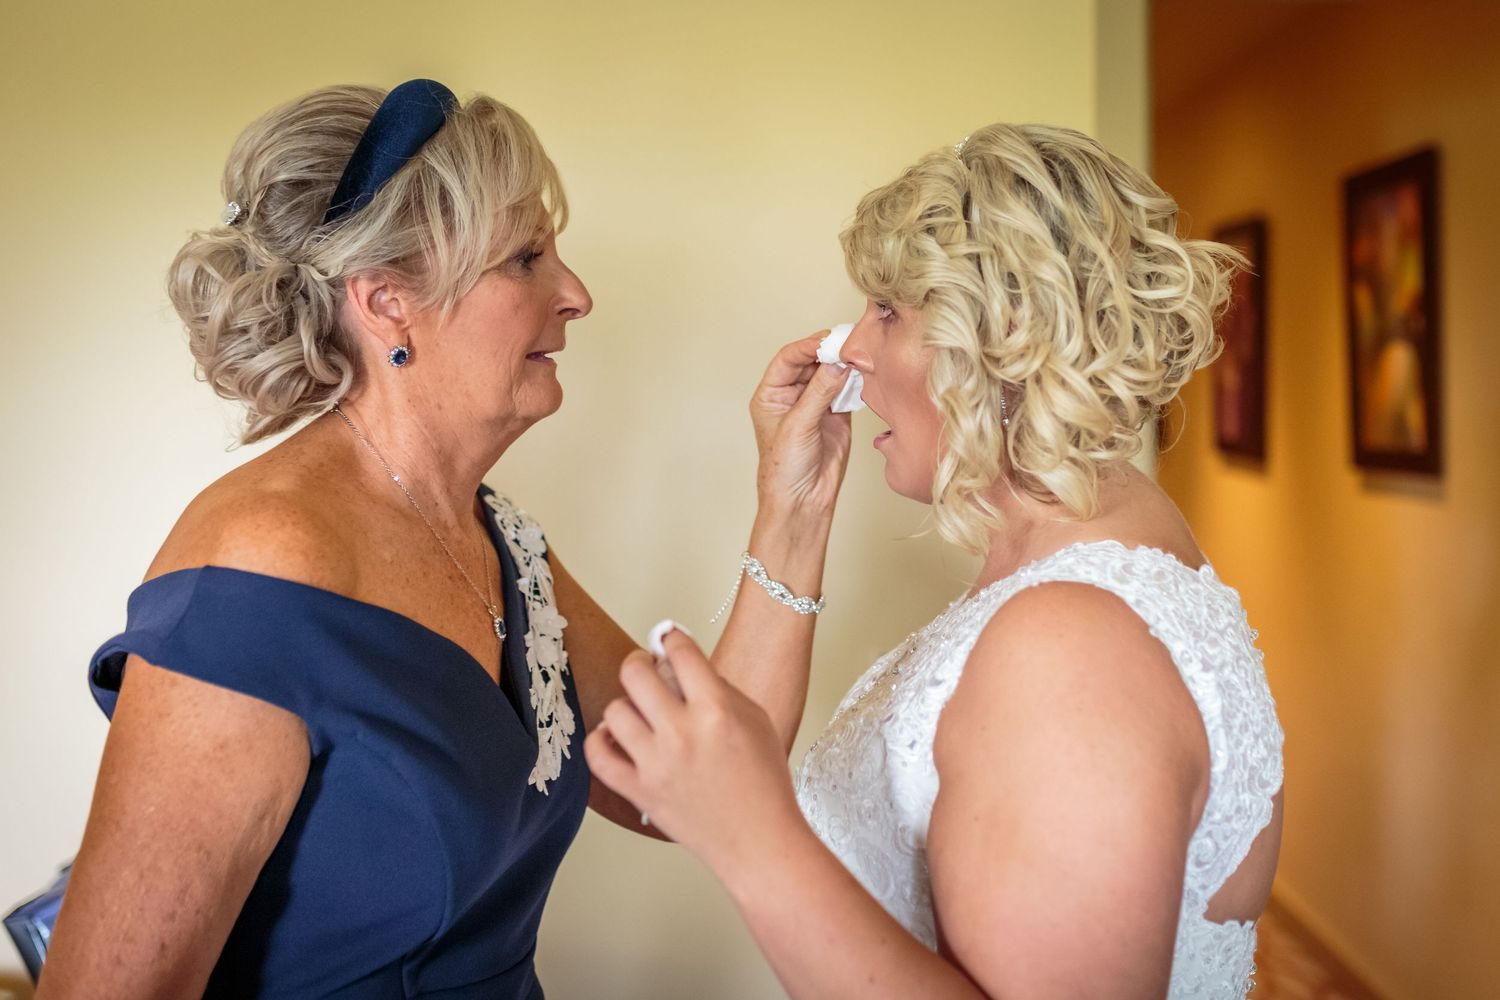 mother of the bride carefully dabs a tear from her daughters eyes so as not to smudge her makeup